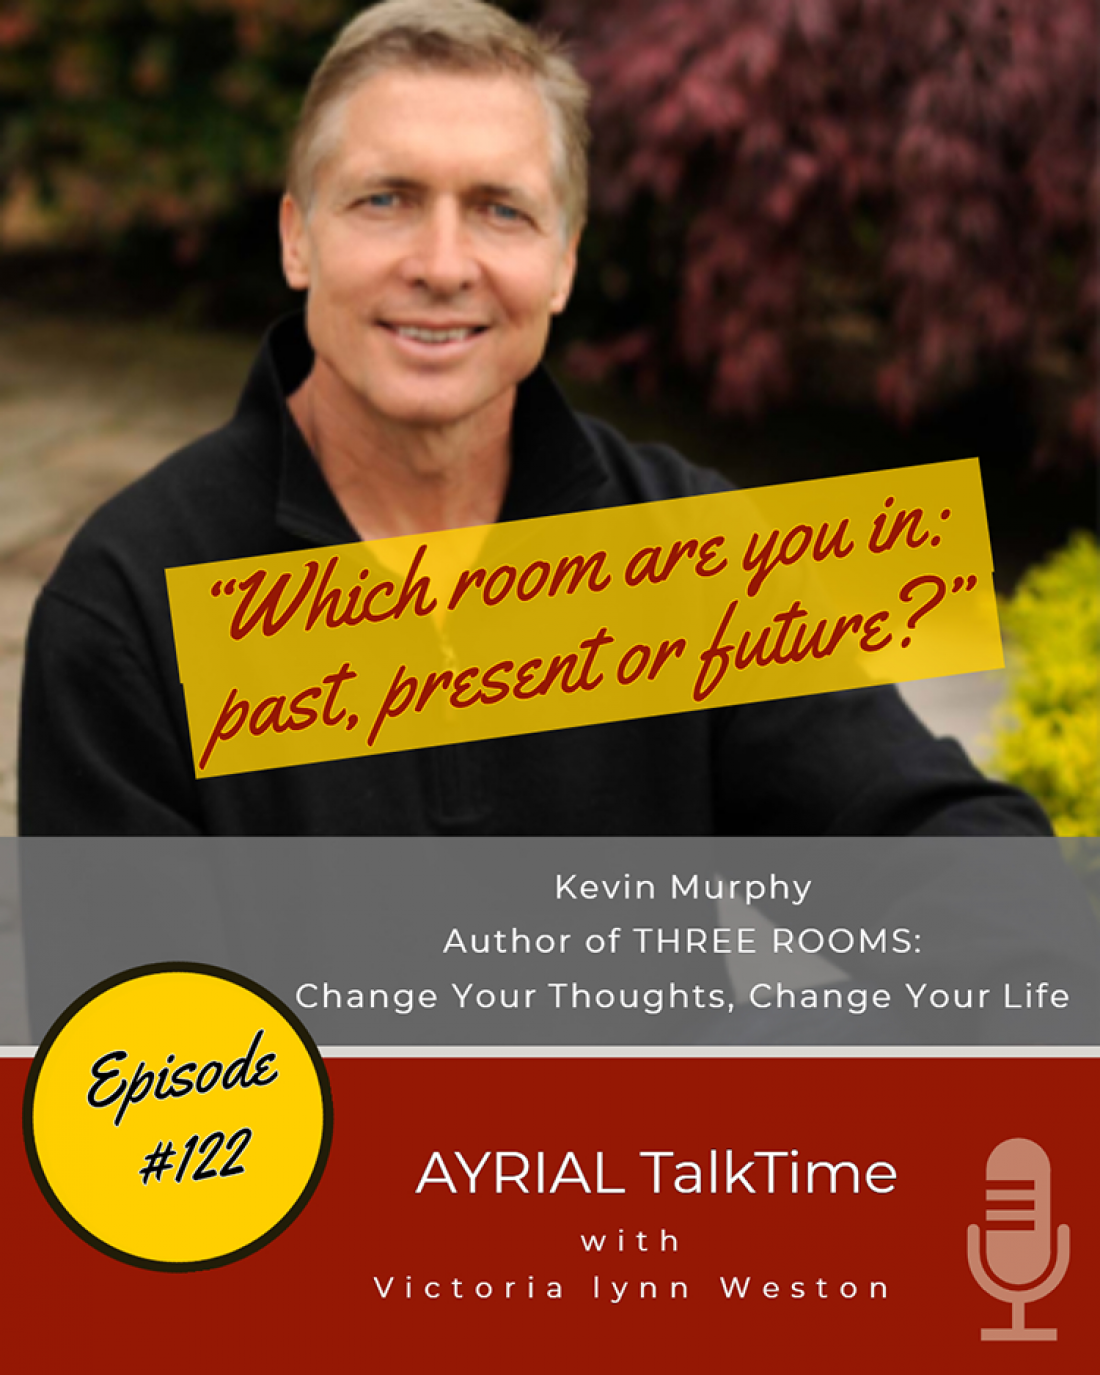 AYRIAL TalkTime Podcast kevin murphy three rooms